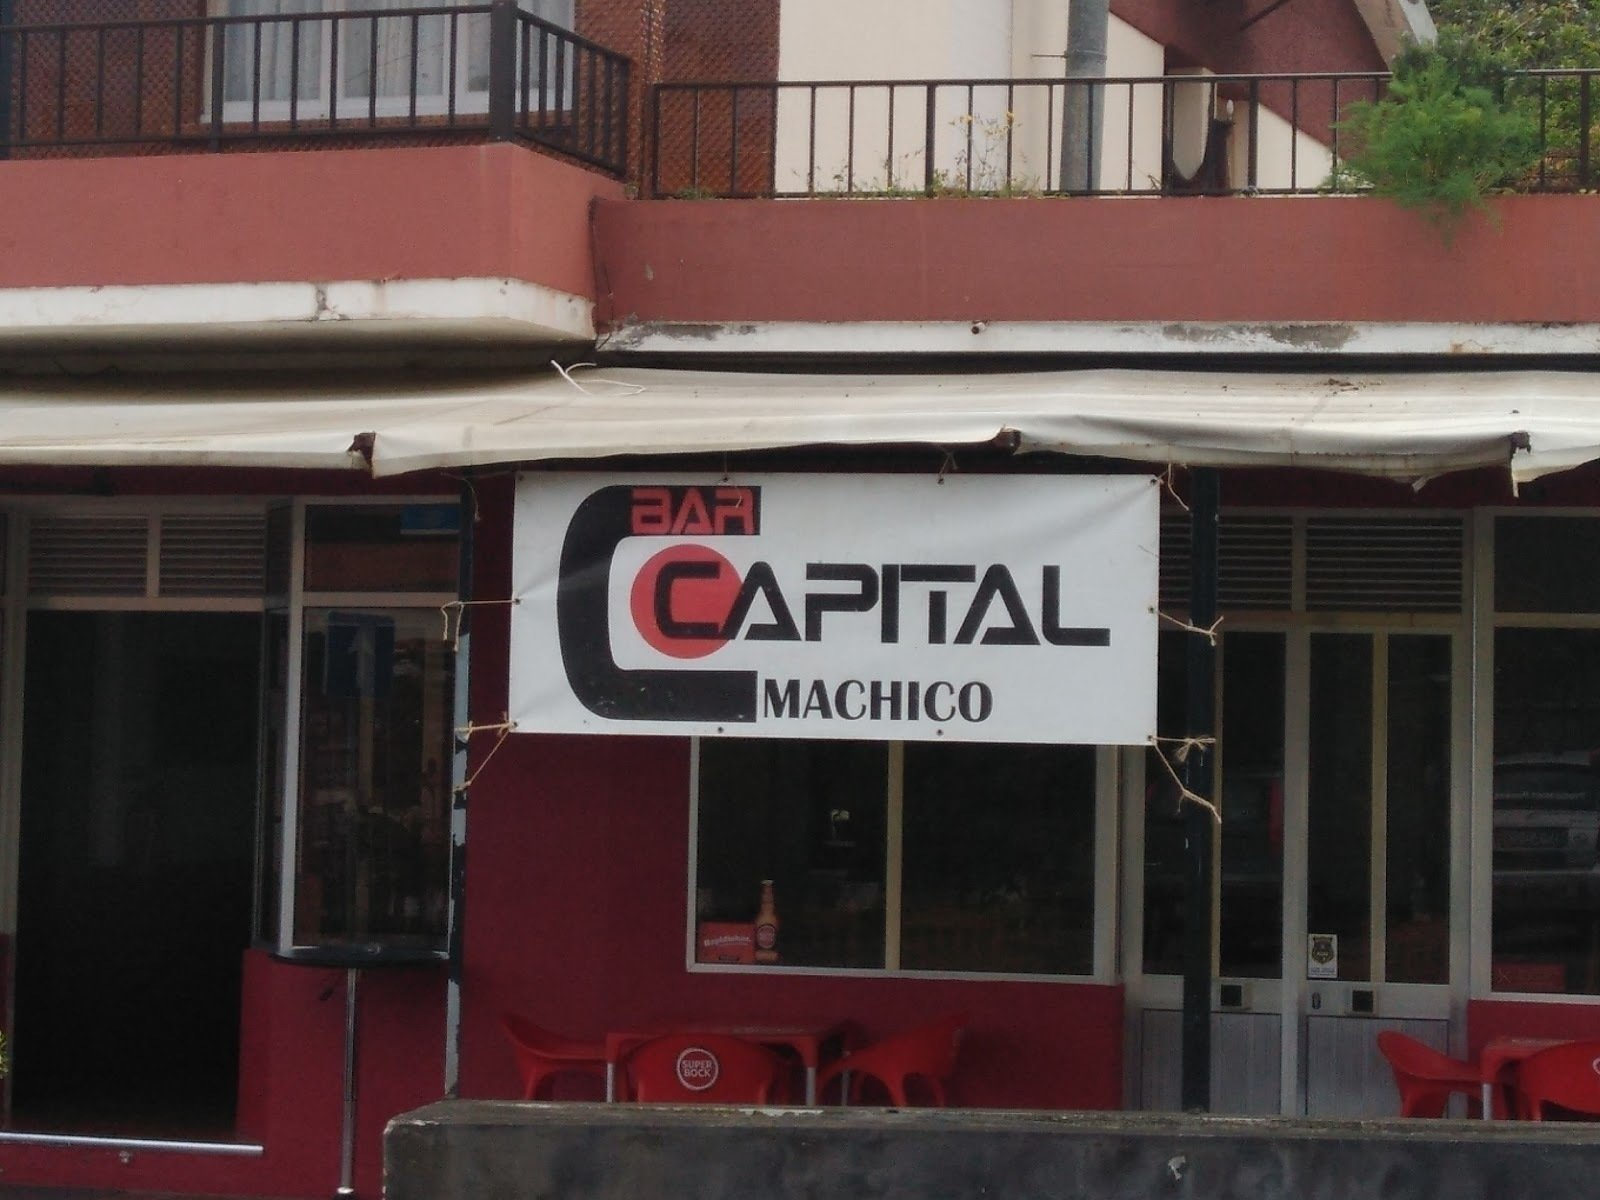 BAR CAPITAL: A Work-Friendly Place in Machico